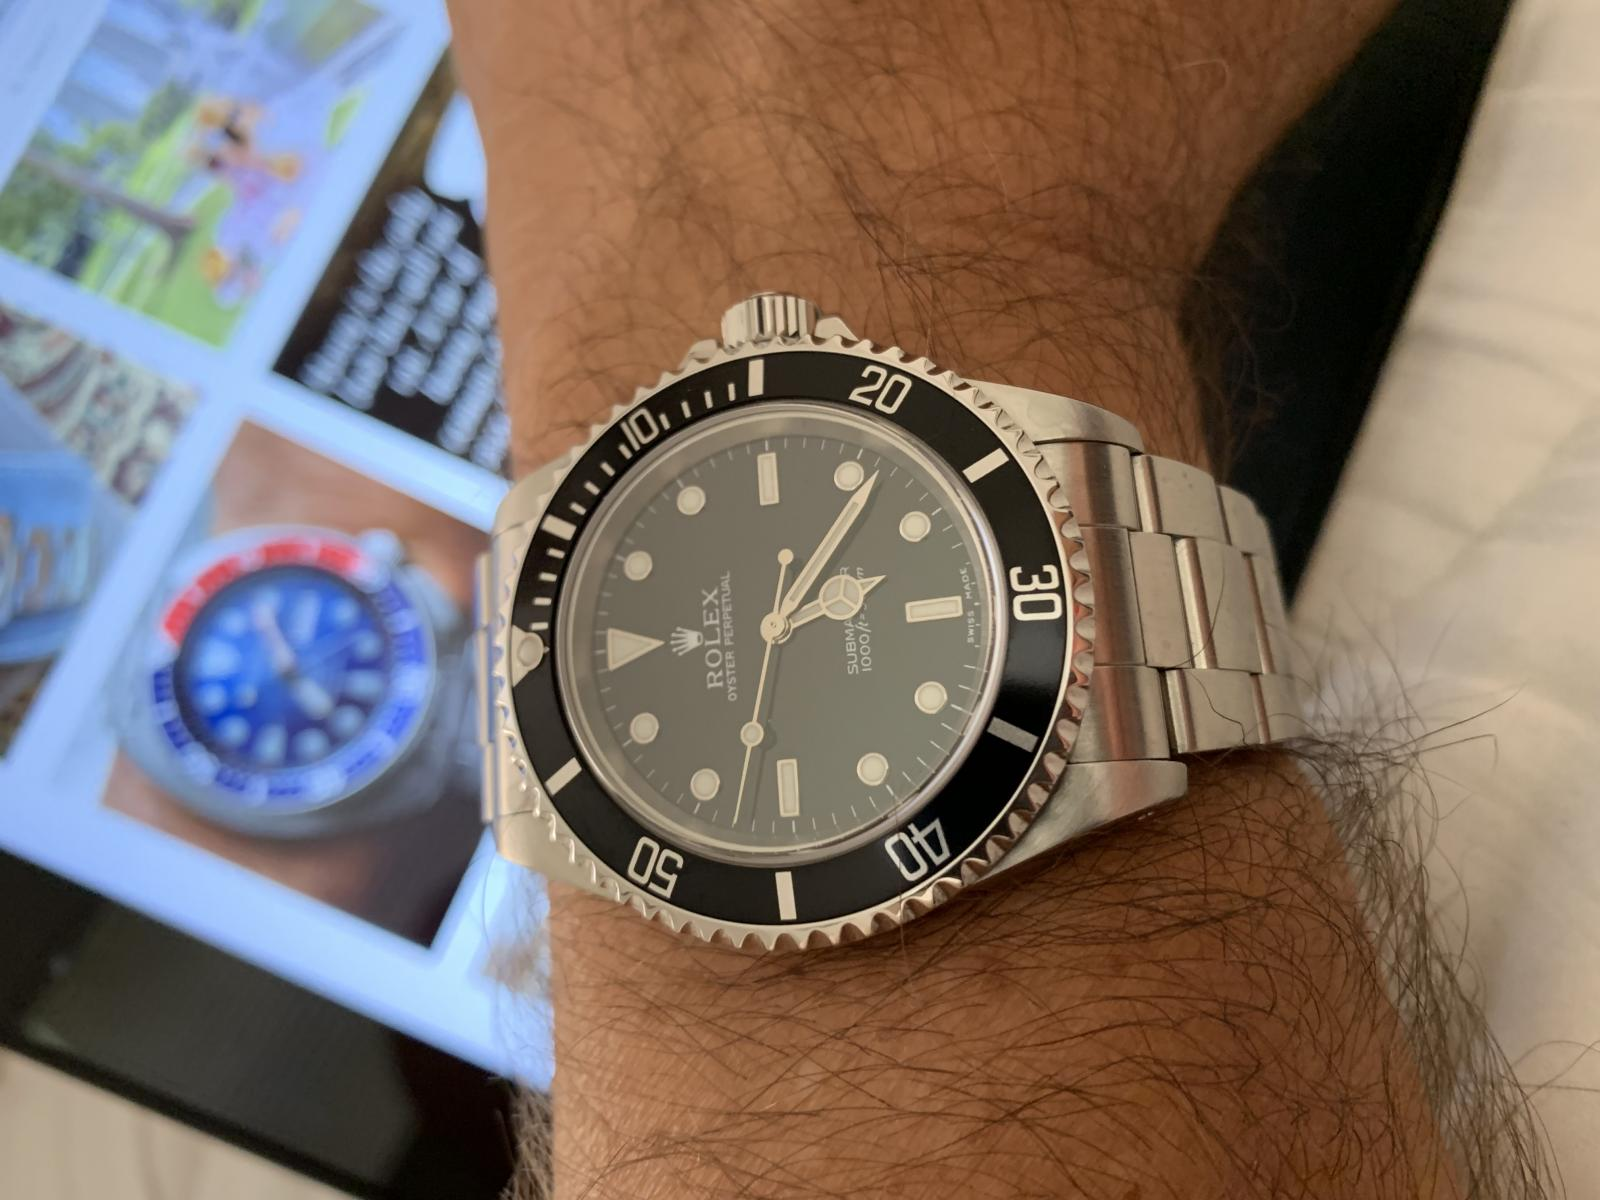 Post Your Best Wrist Shot Pictures-705400a6-074b-4011-8fe4-6709c78d6807.jpg